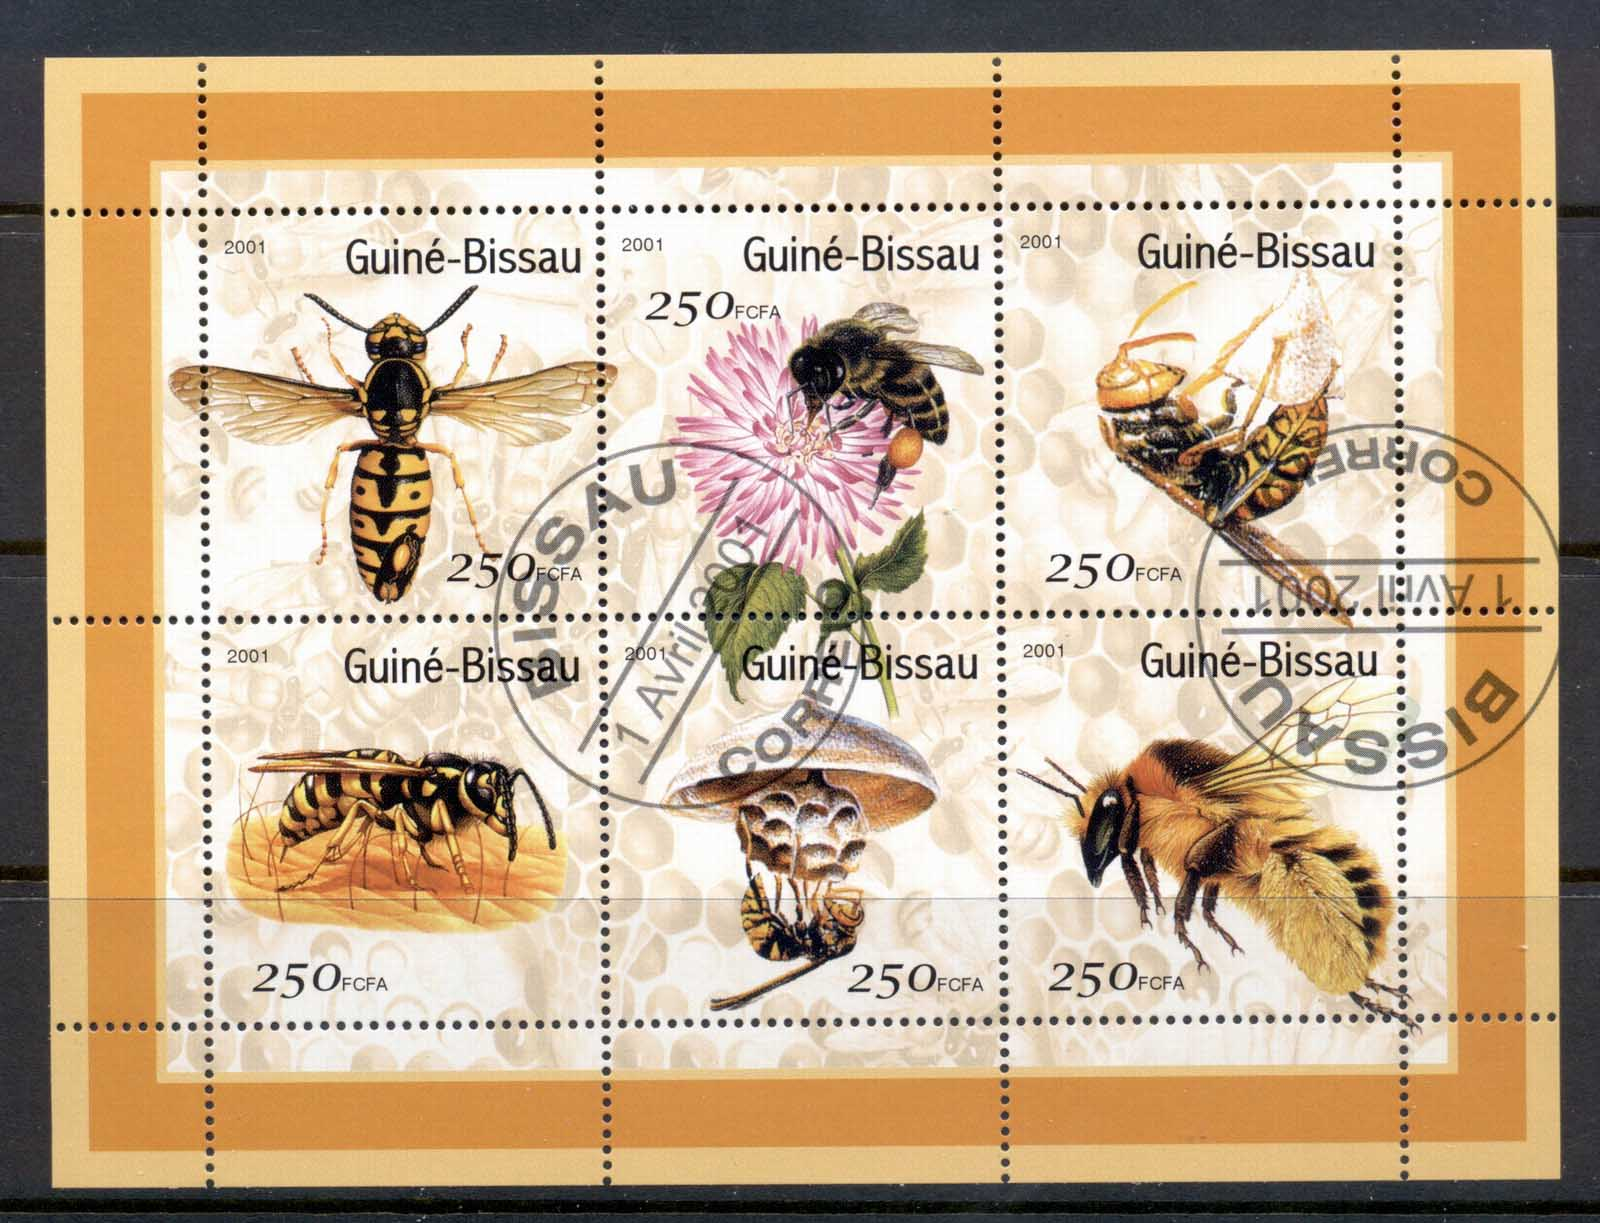 Guinea Bissau 2001 Insects, Bees MS CTO